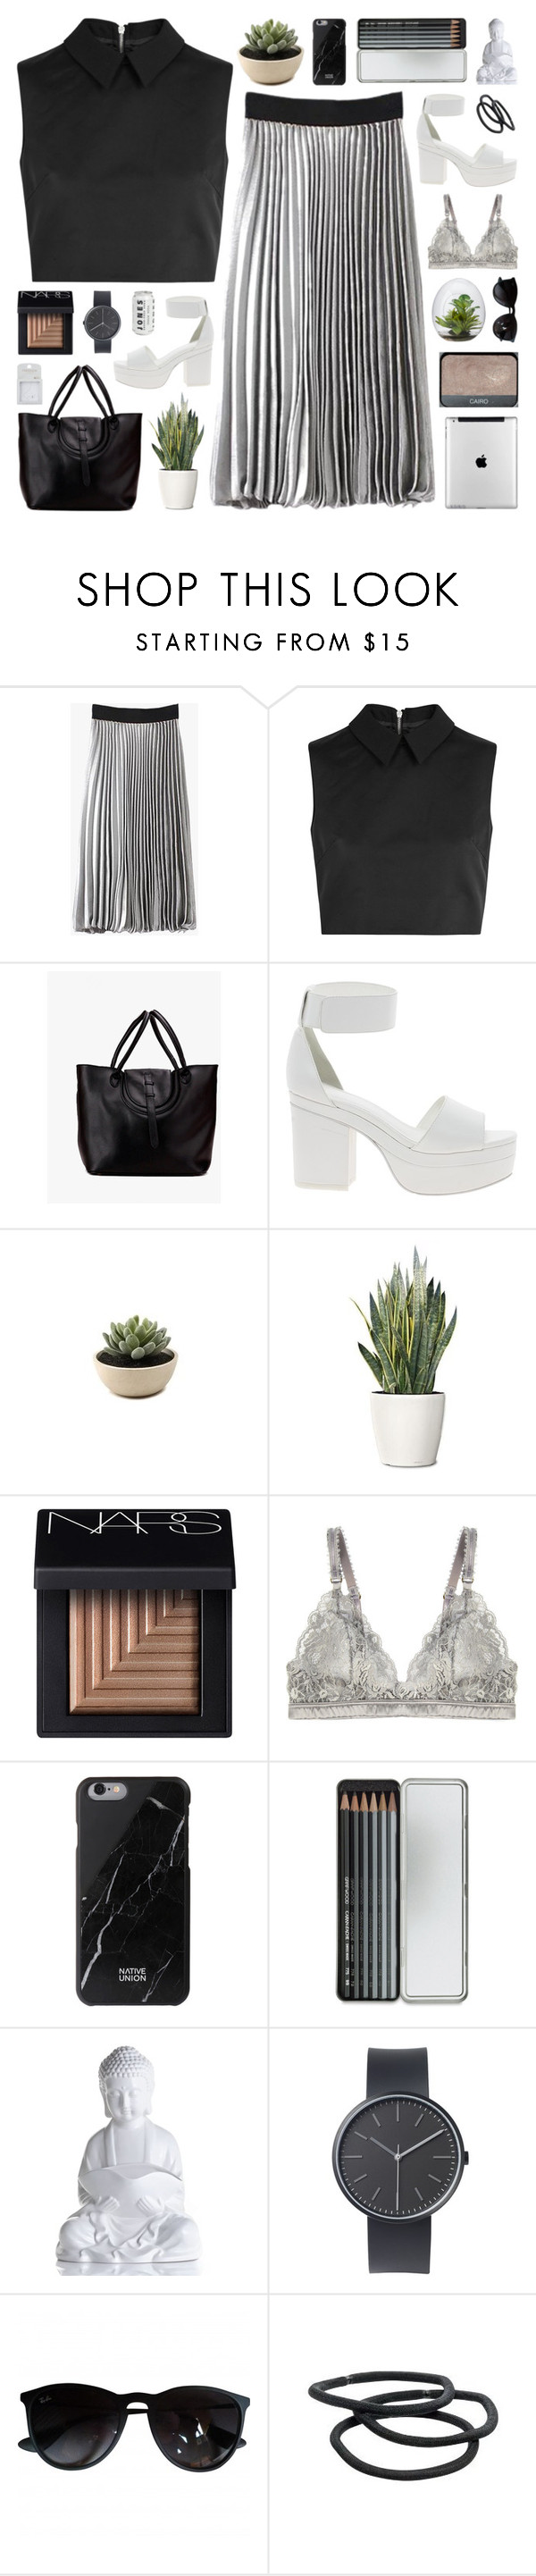 """""""Monochrome for business."""" by novalikarida ❤ liked on Polyvore featuring McQ by Alexander McQueen, ASOS, PLANT, NARS Cosmetics, STELLA McCARTNEY, Native Union, Caran D'Ache, Uniform Wares, Ray-Ban and Goody"""